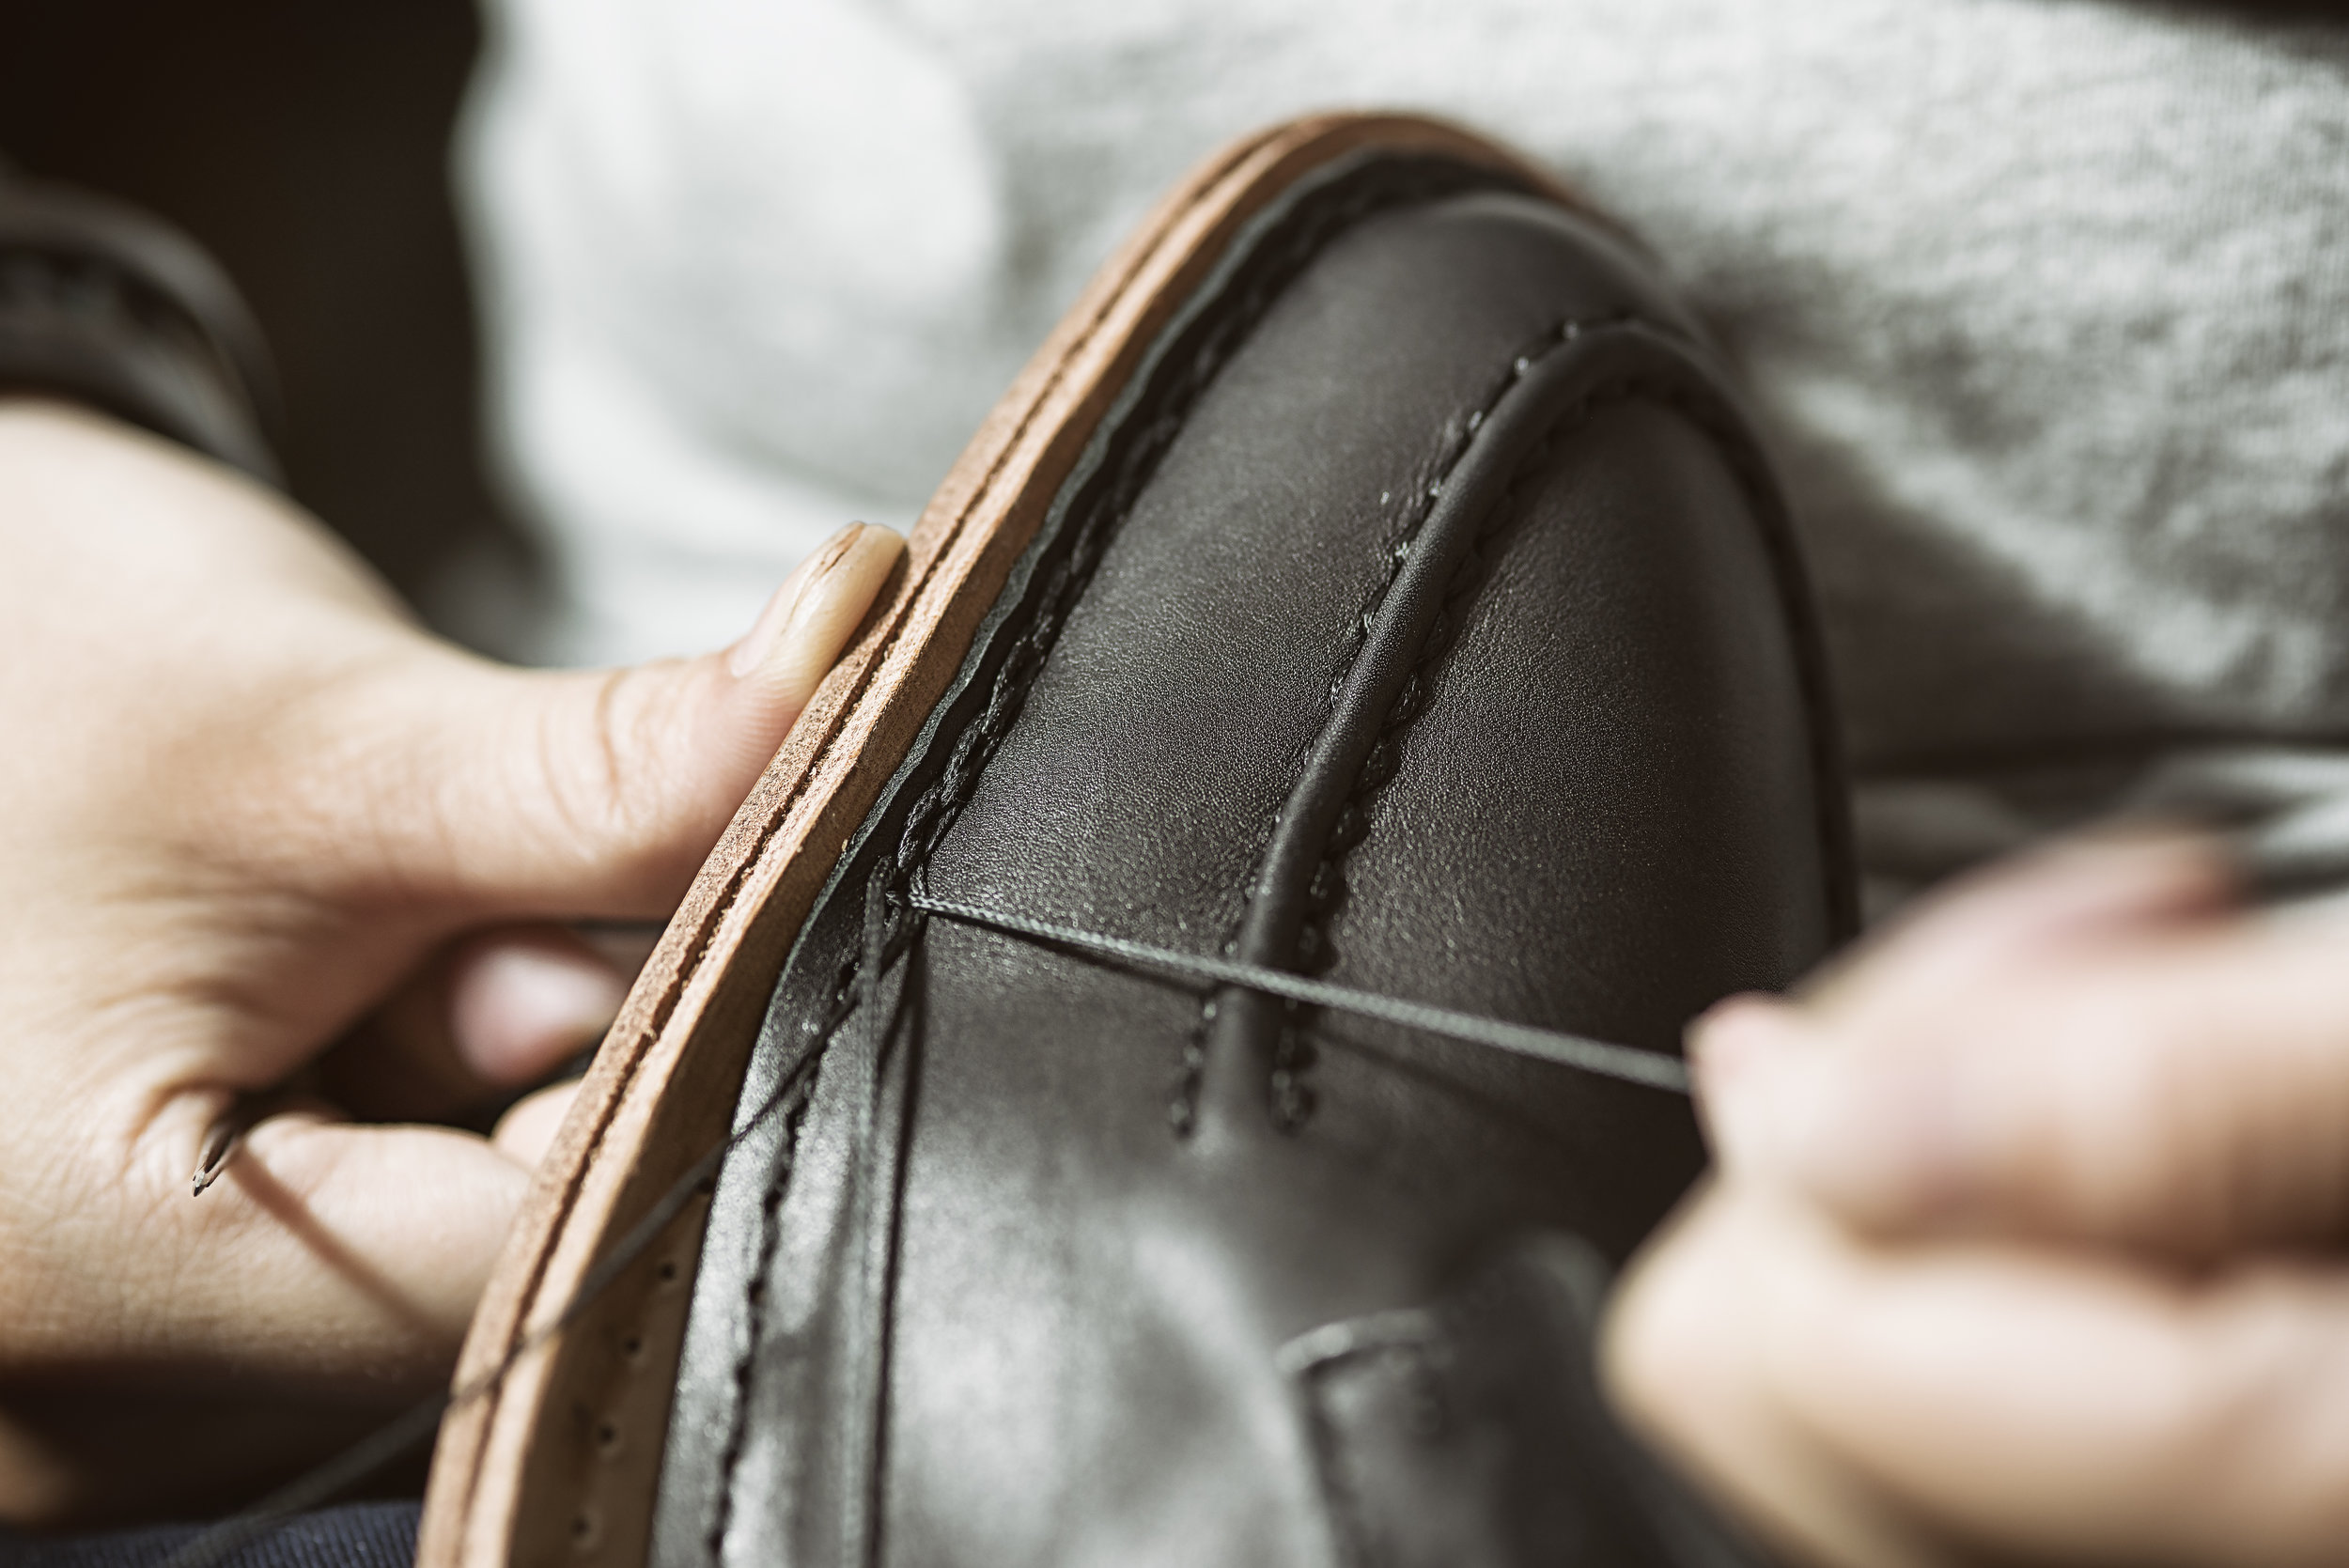 Hand-sewn shoe construction